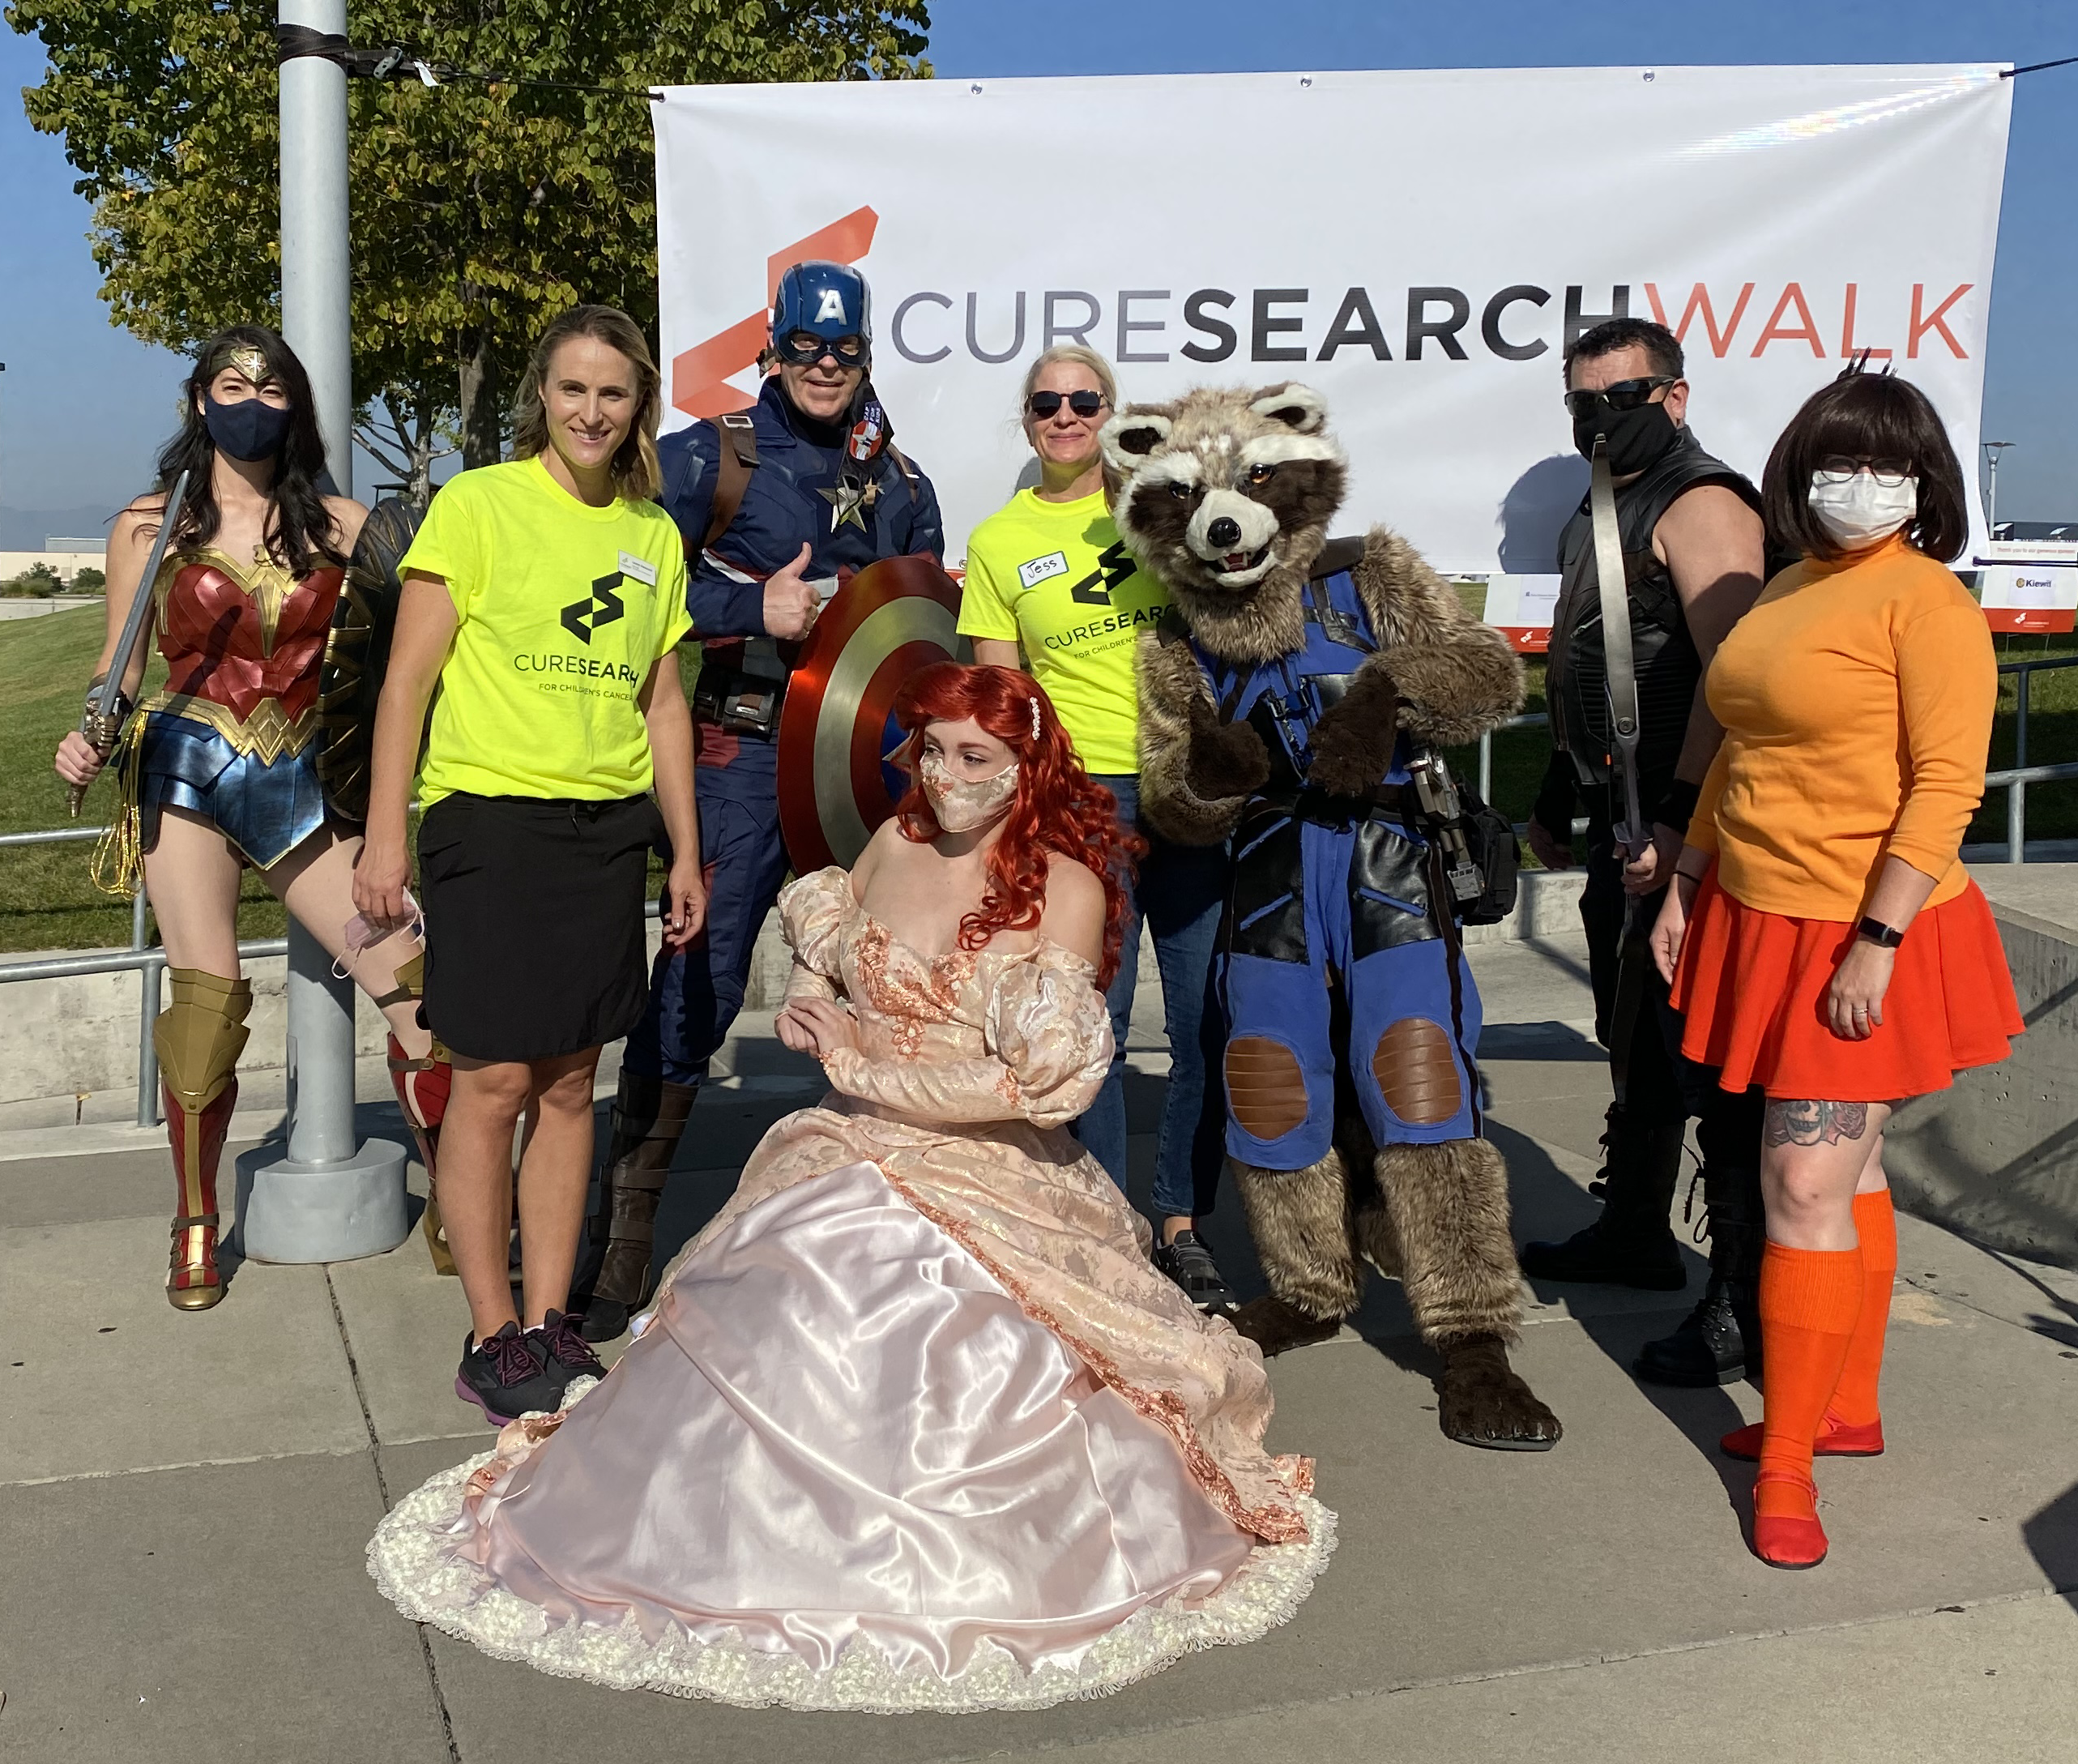 2021 CureSearch Walk uniting to end children's cancer featuring Jess Armstrong